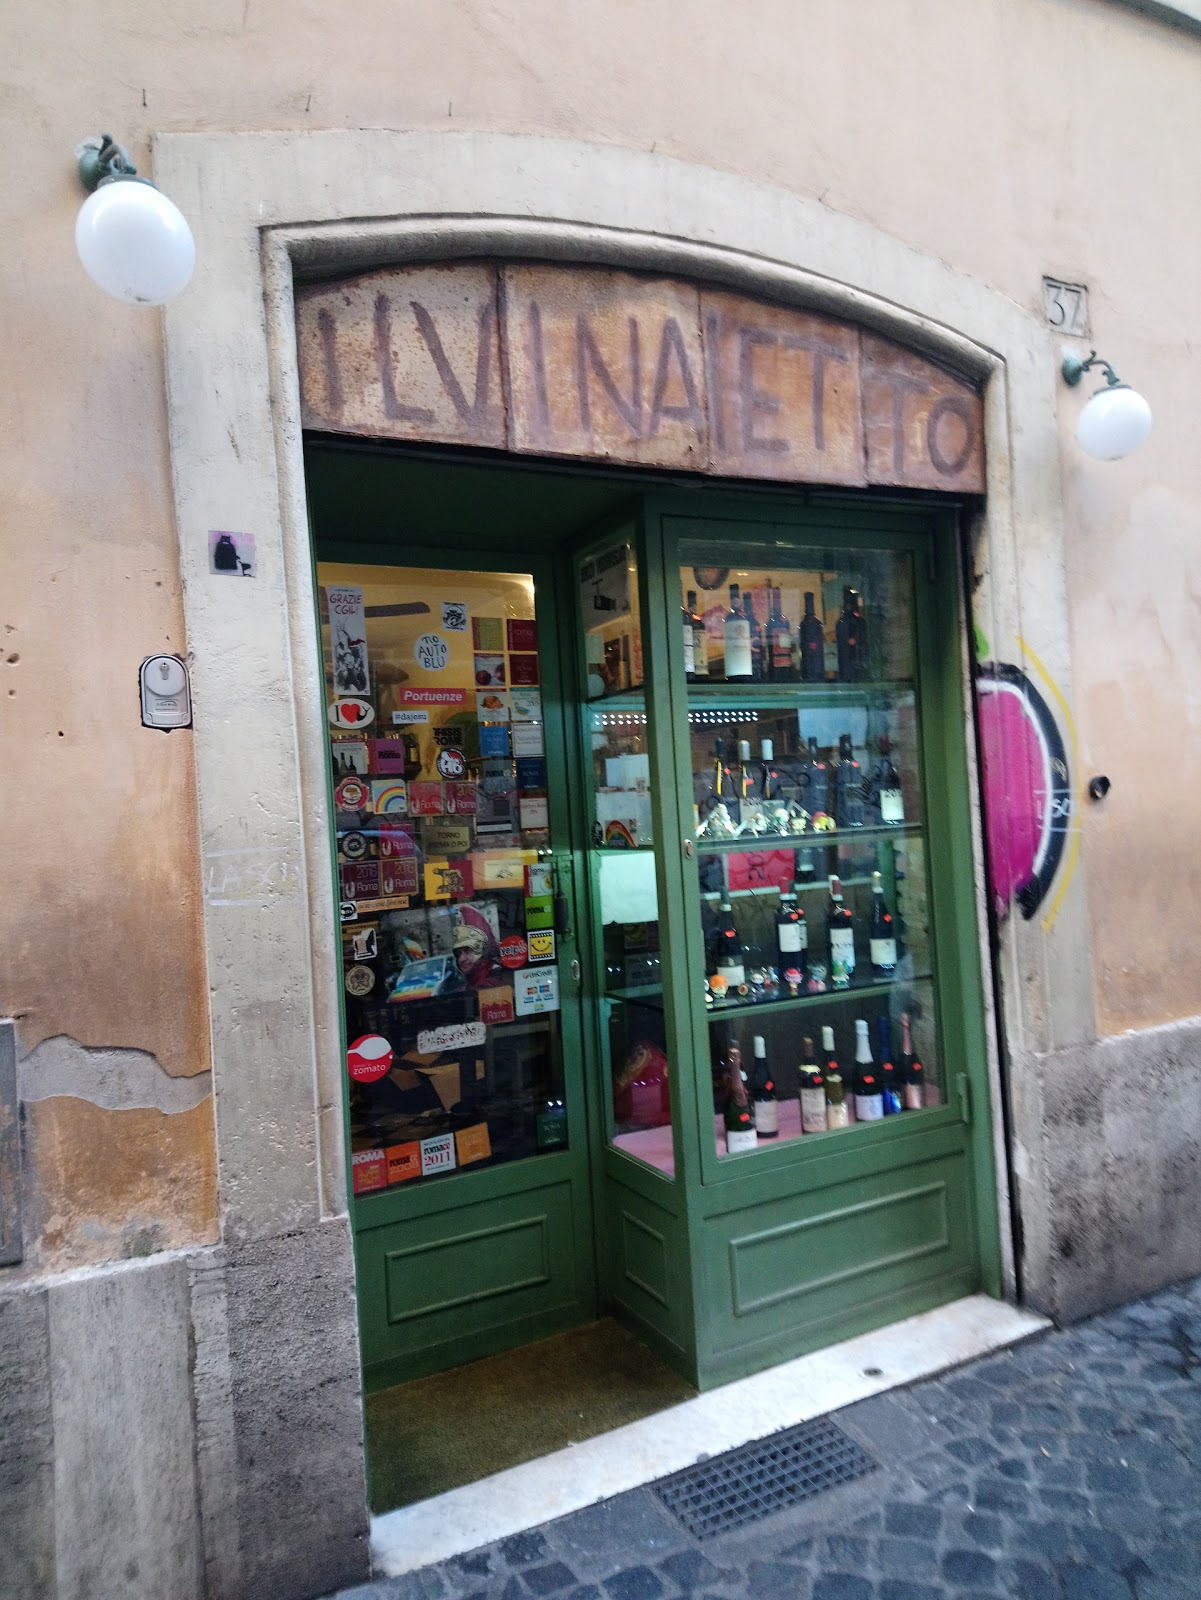 Visit Il Vinaietto On Your Trip To Rome Or Italy Inspirock